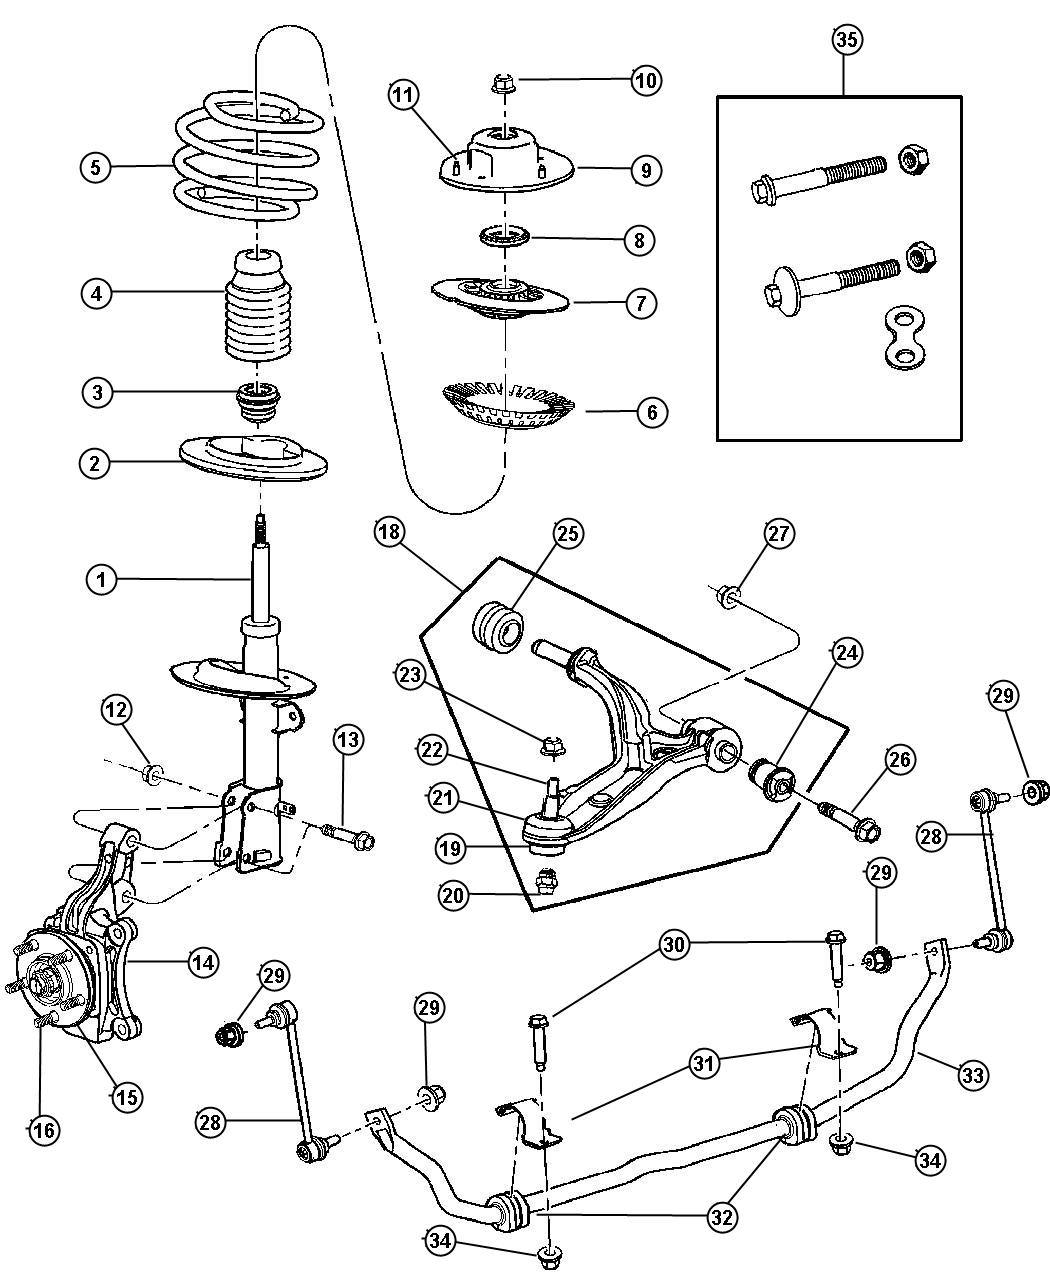 Dodge Voyager Radio Wiring Diagram Free Pictu | Wiring Liry on 03 dodge ram wiring diagram, 03 ford expedition wiring diagram, 03 ford ranger wiring diagram, 03 mitsubishi galant wiring diagram, 03 jeep wrangler wiring diagram,